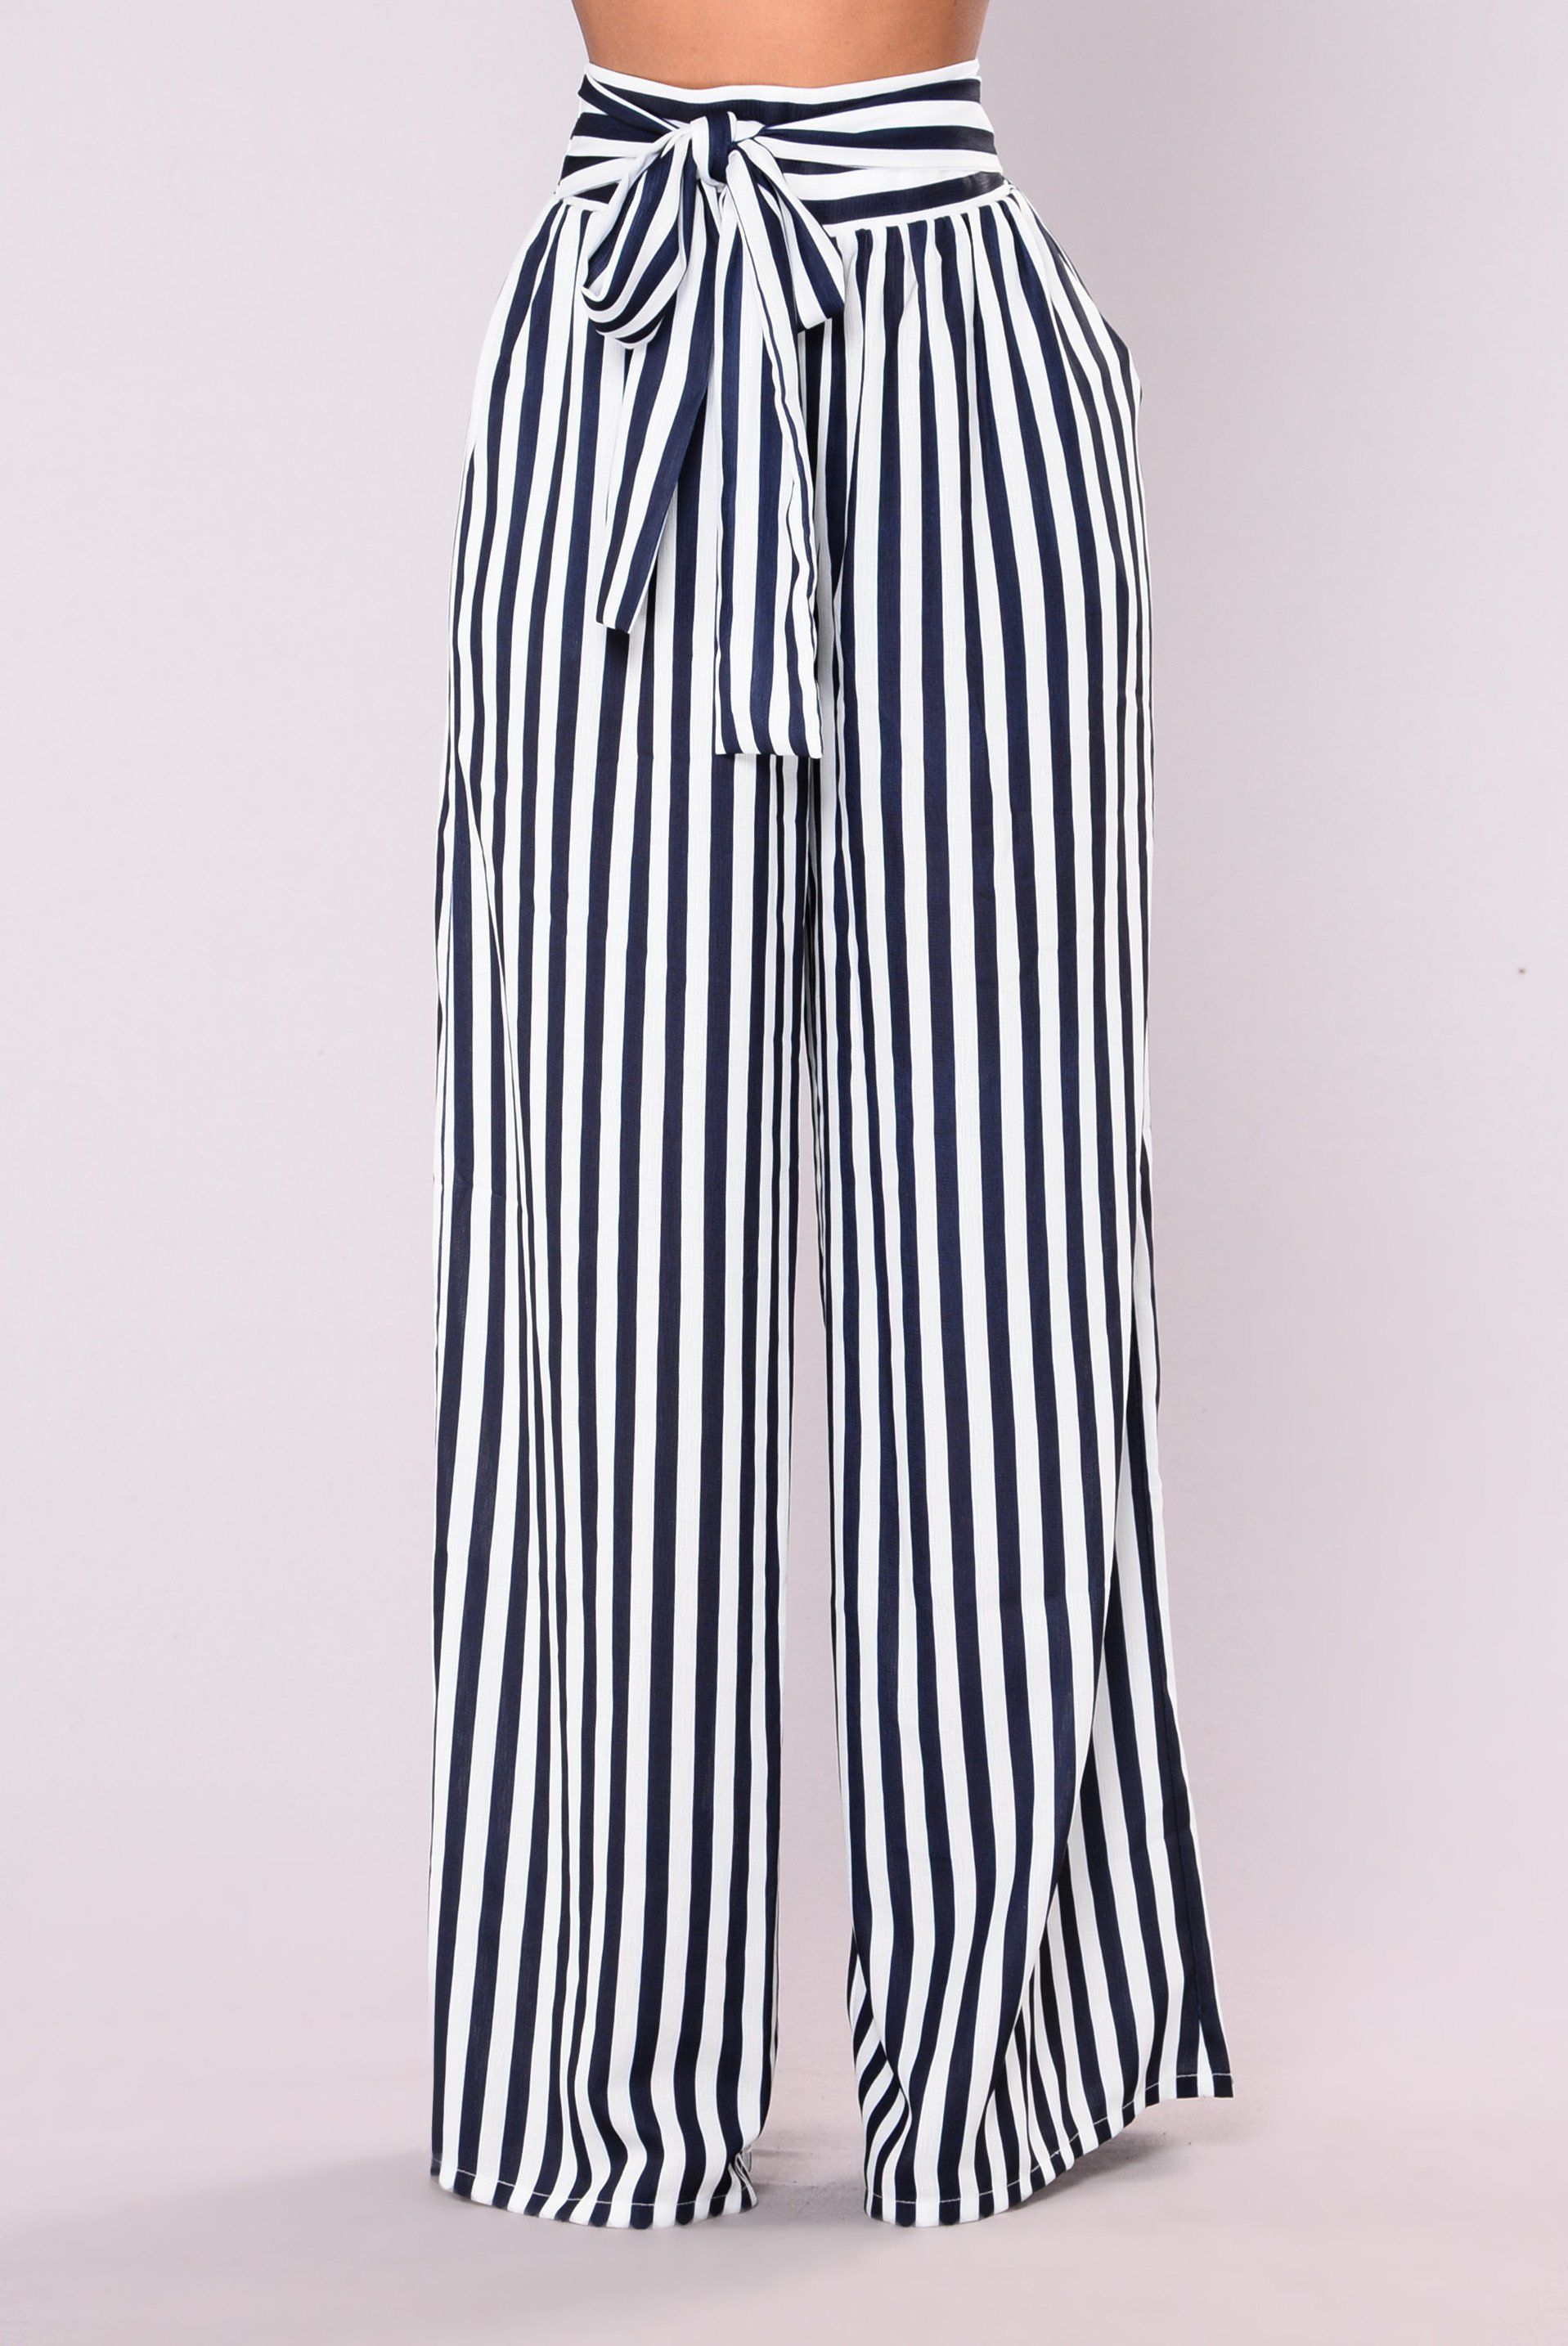 c2fdbe888b Brea Stripe Pants - Navy White en 2019